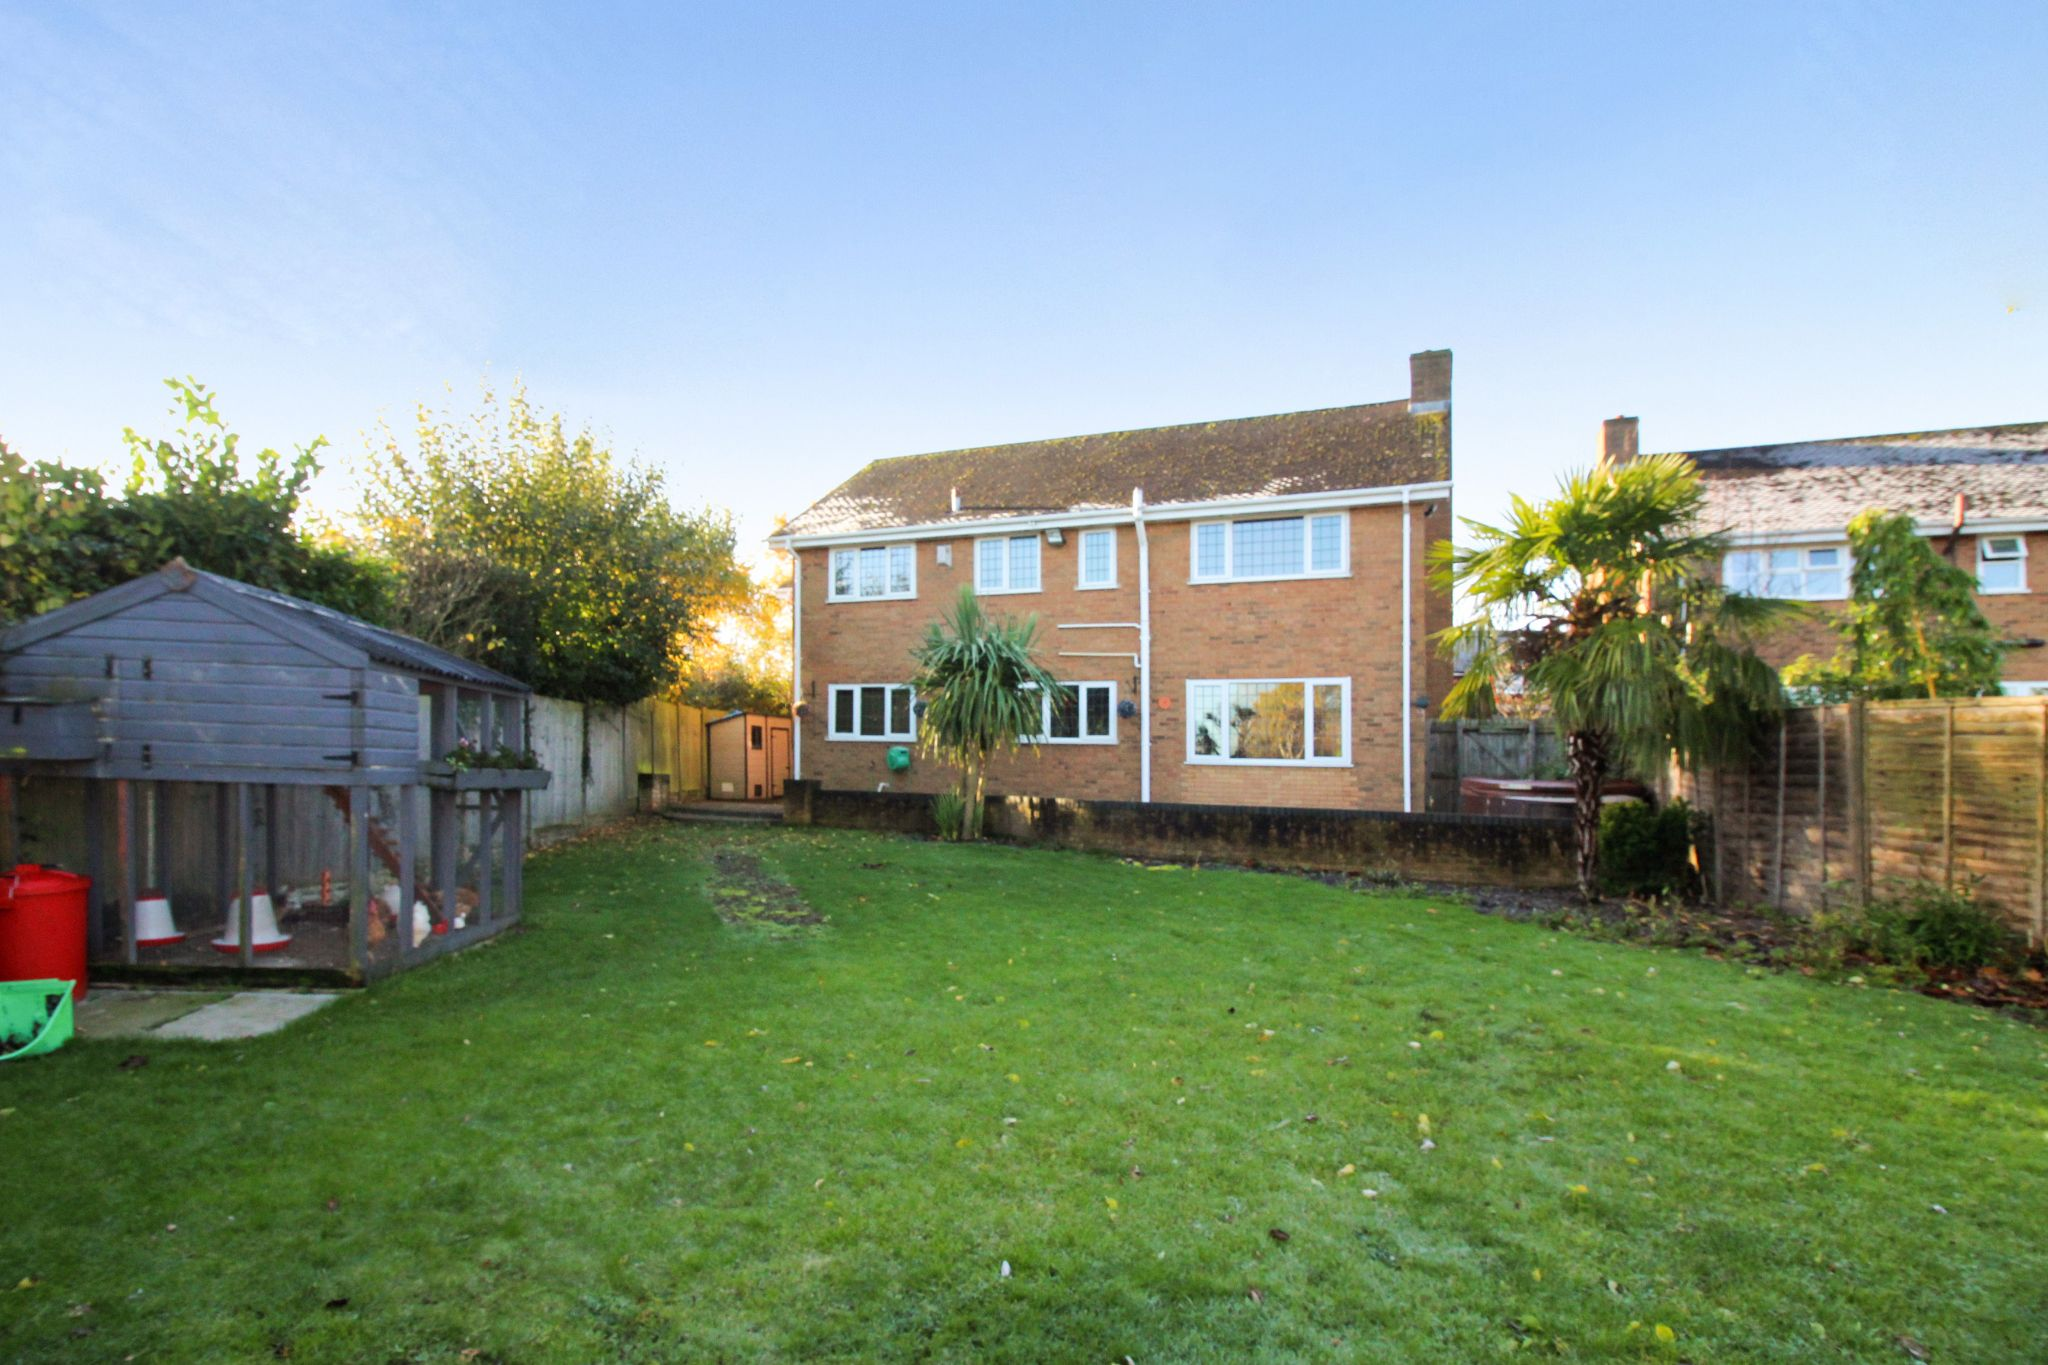 6 bedroom detached house SSTC in Solihull - Photograph 24.